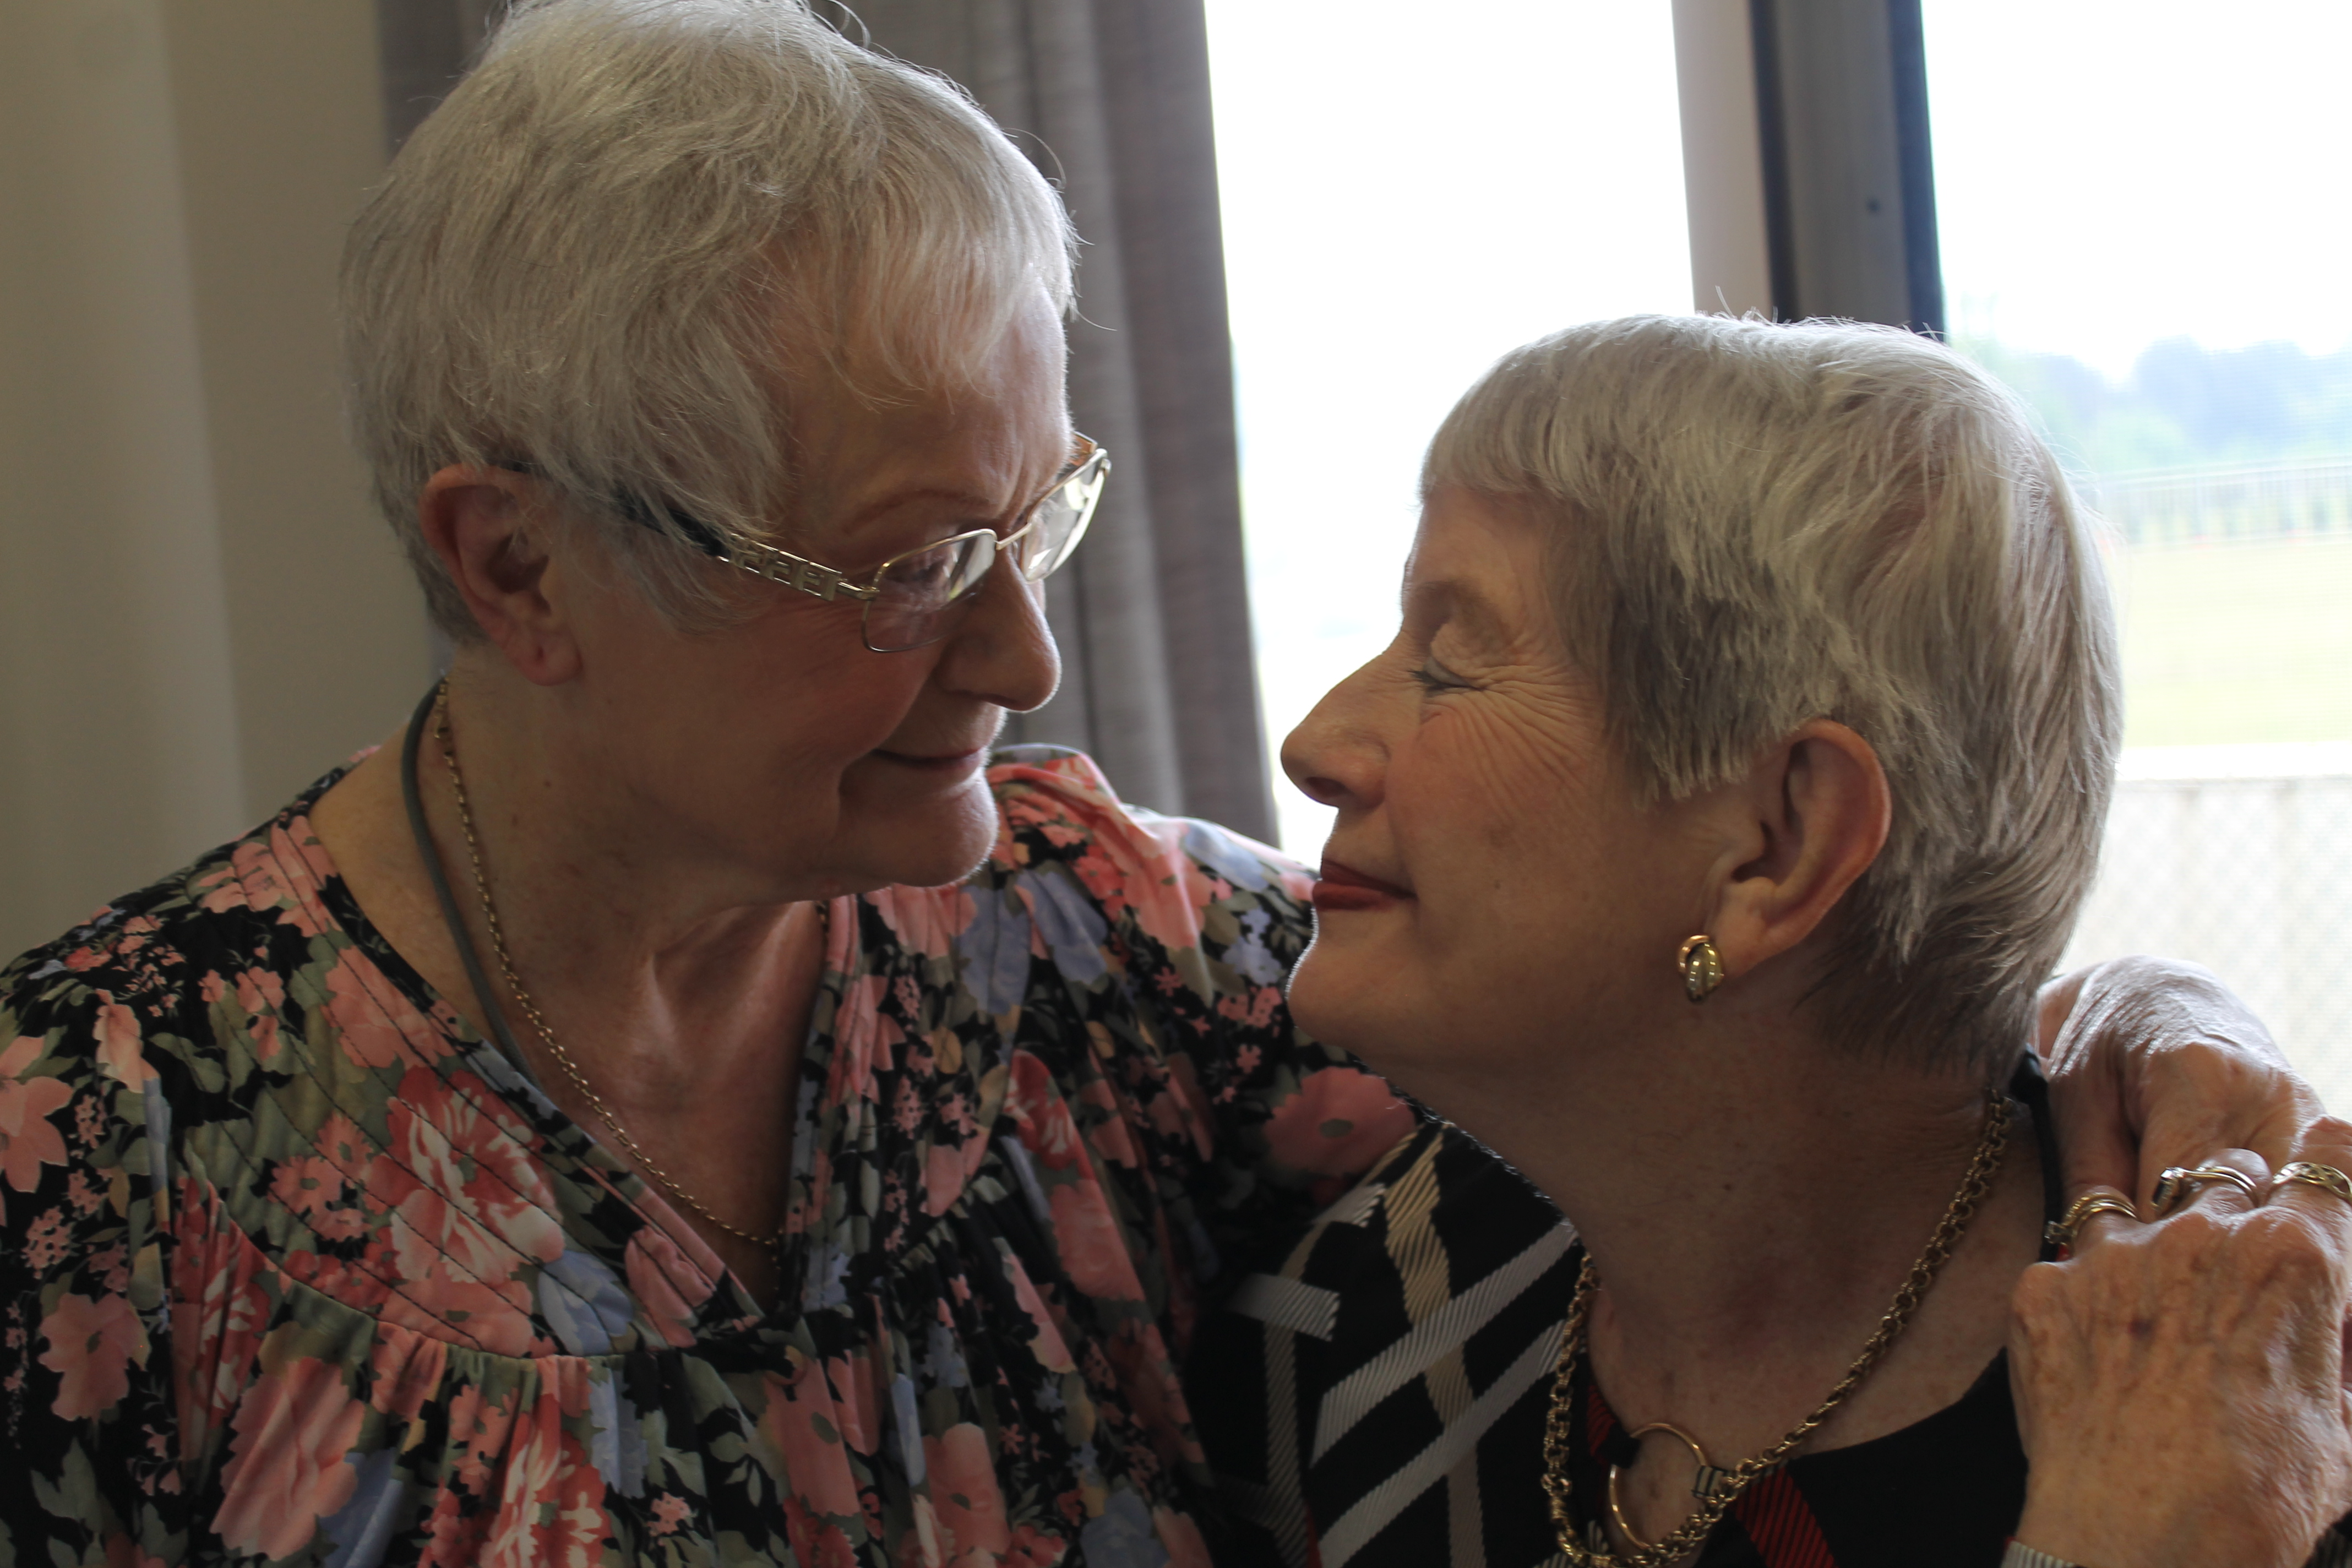 Finding your best friend in a Residential Care home